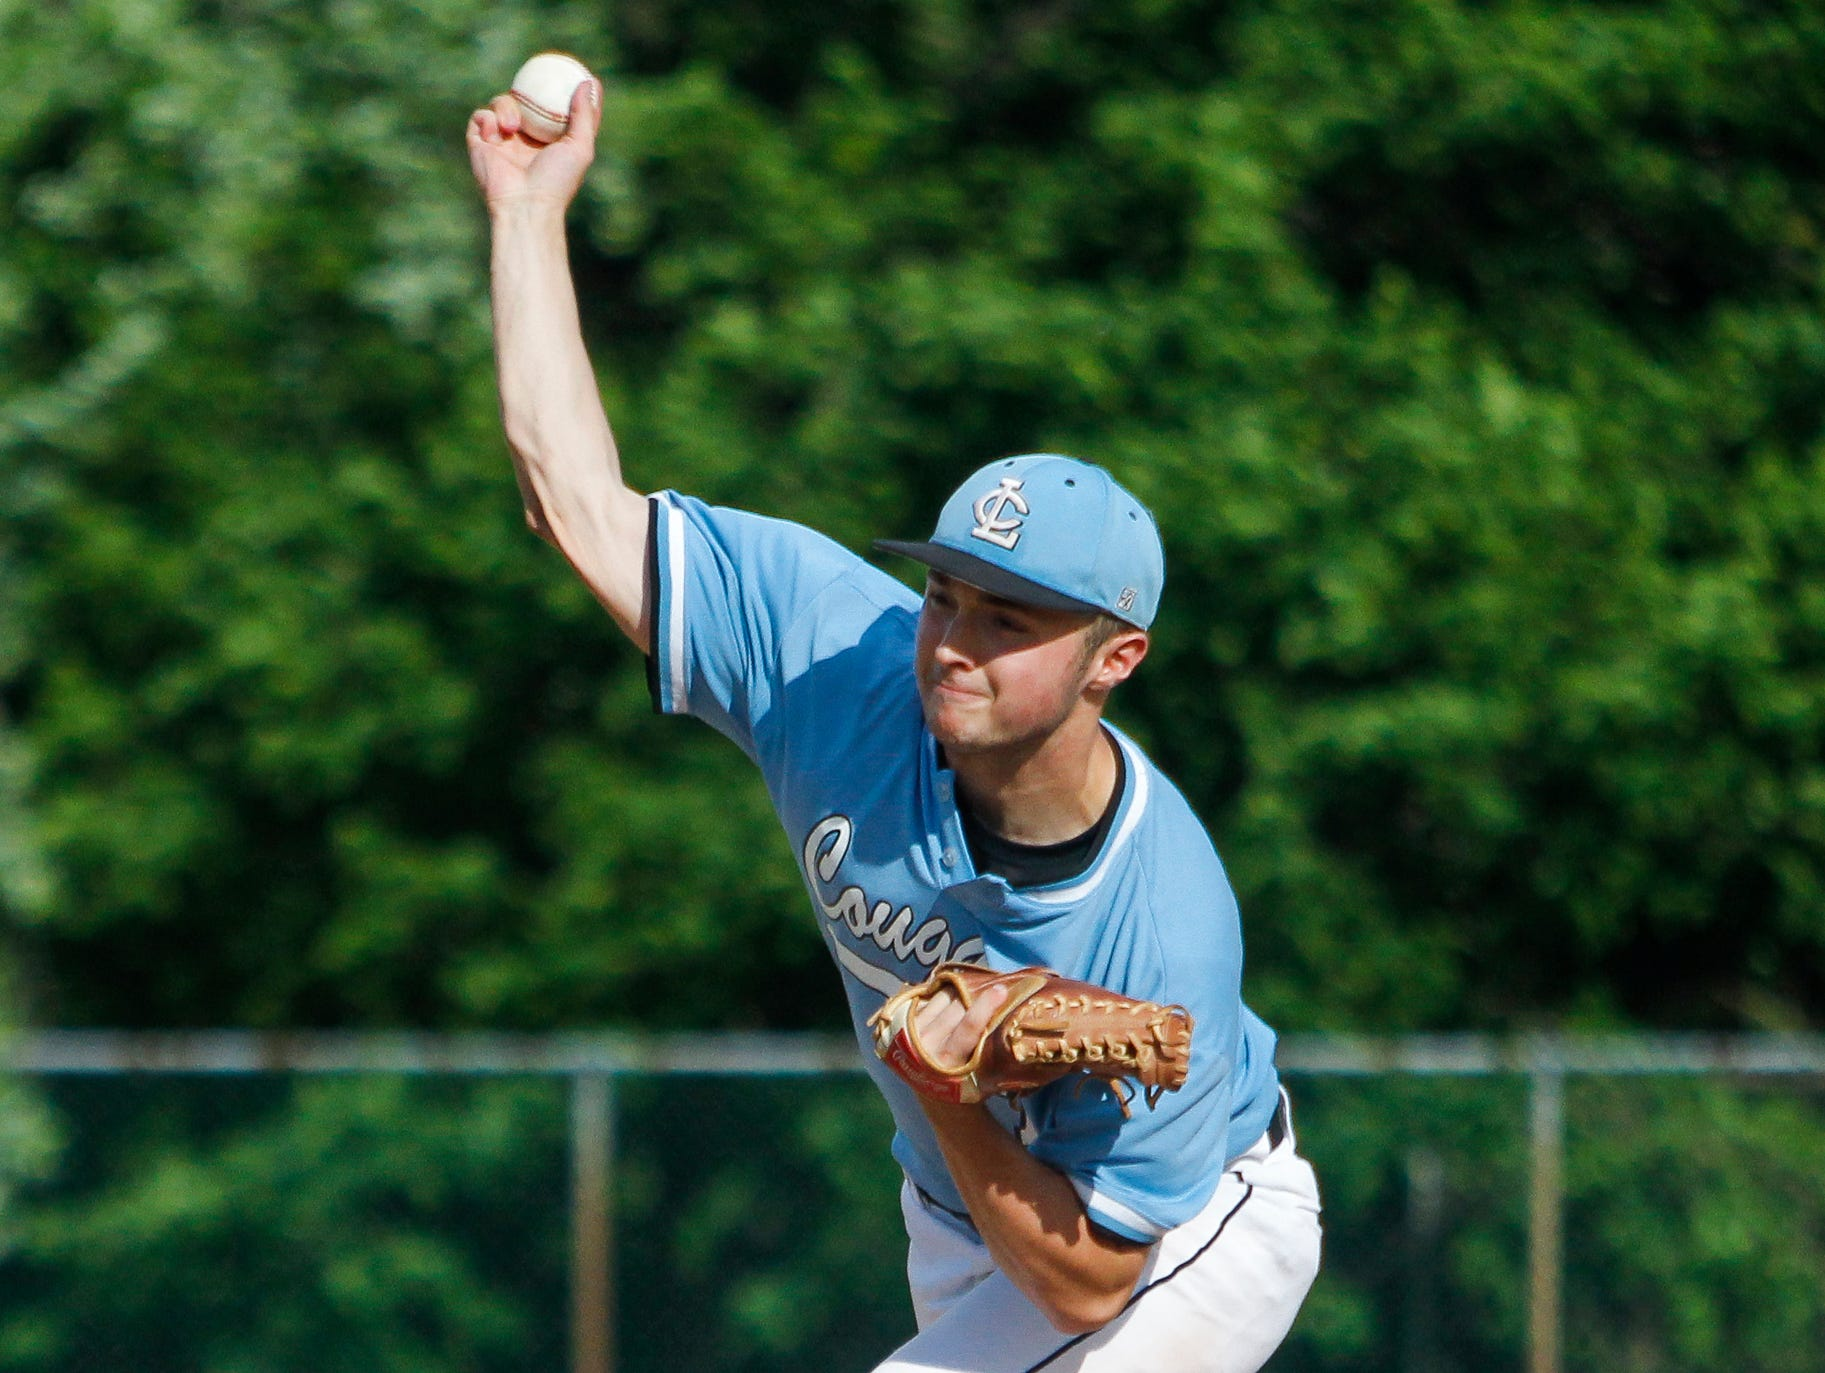 Lansing Catholic pitcher Riley Creamer unleashes a pitch against DeWitt in the 54th Annual Dean Shippey Diamond Classic May 18, 2015, at Kircher-Municipal Park in Lansing.